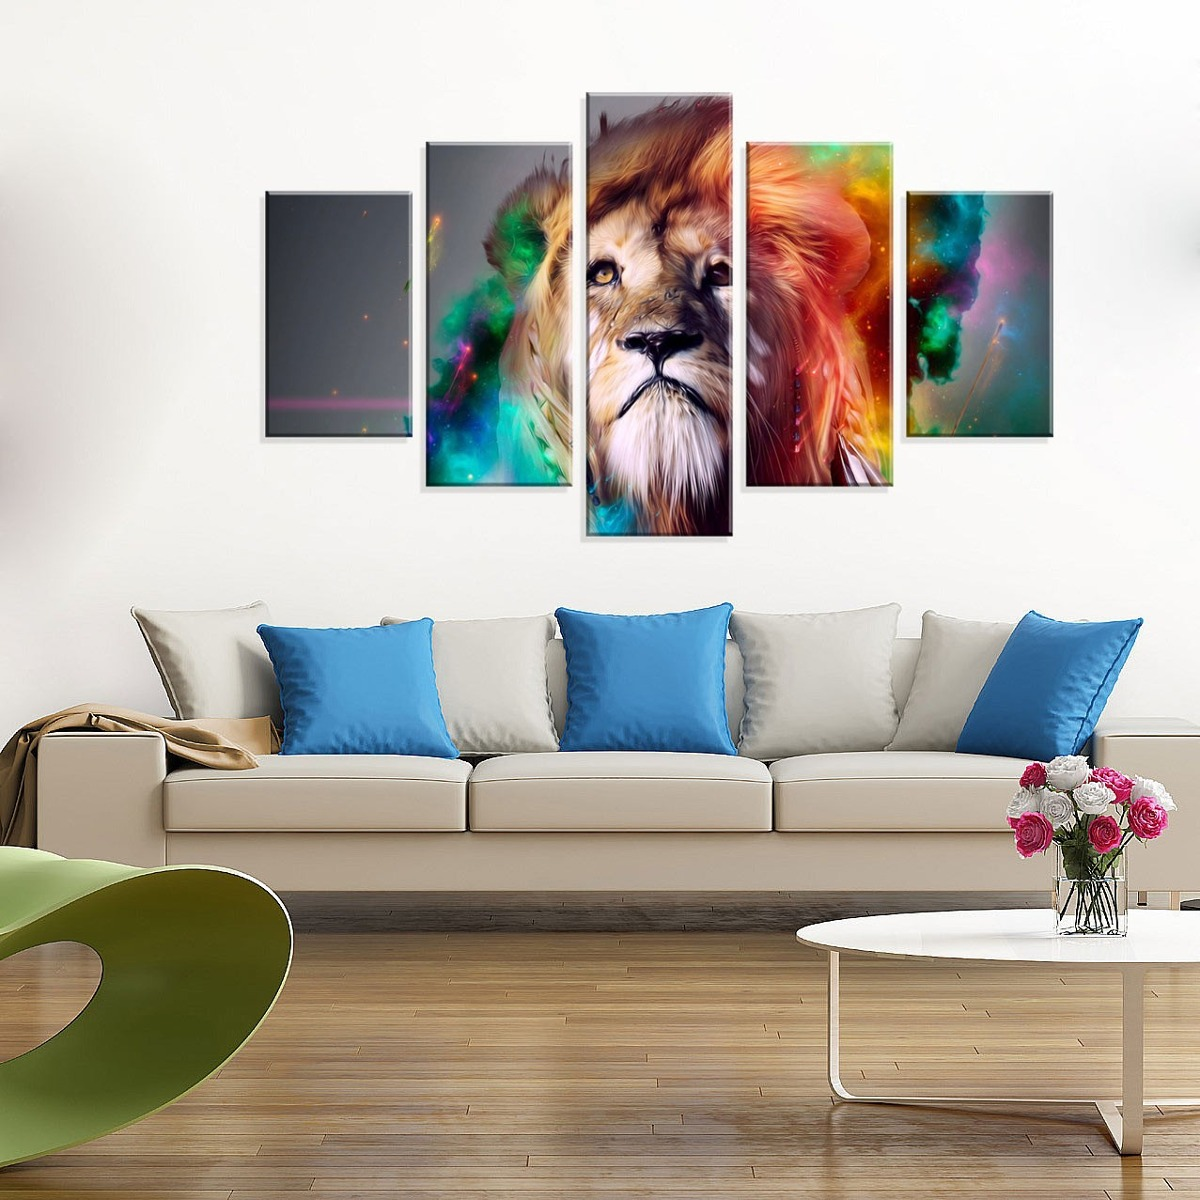 2595ee0d0 Conjunto De 5 Telas Decorativas Em Canvas Abstrato Lion - R  299